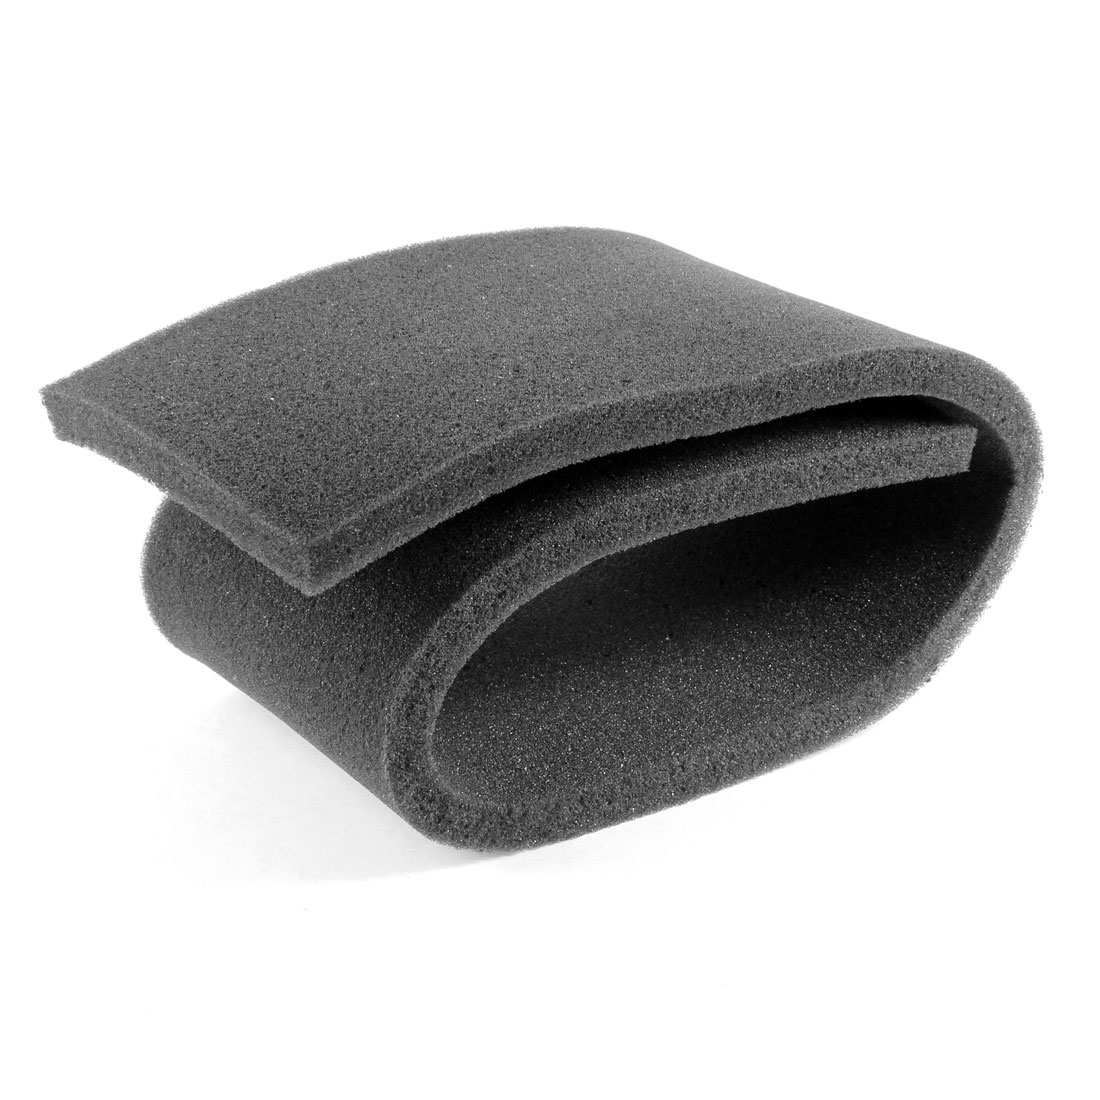 Fish Tank Aquarium Fresh Water Biochemical Filter Sponge 65cmx13cmx1cm Black